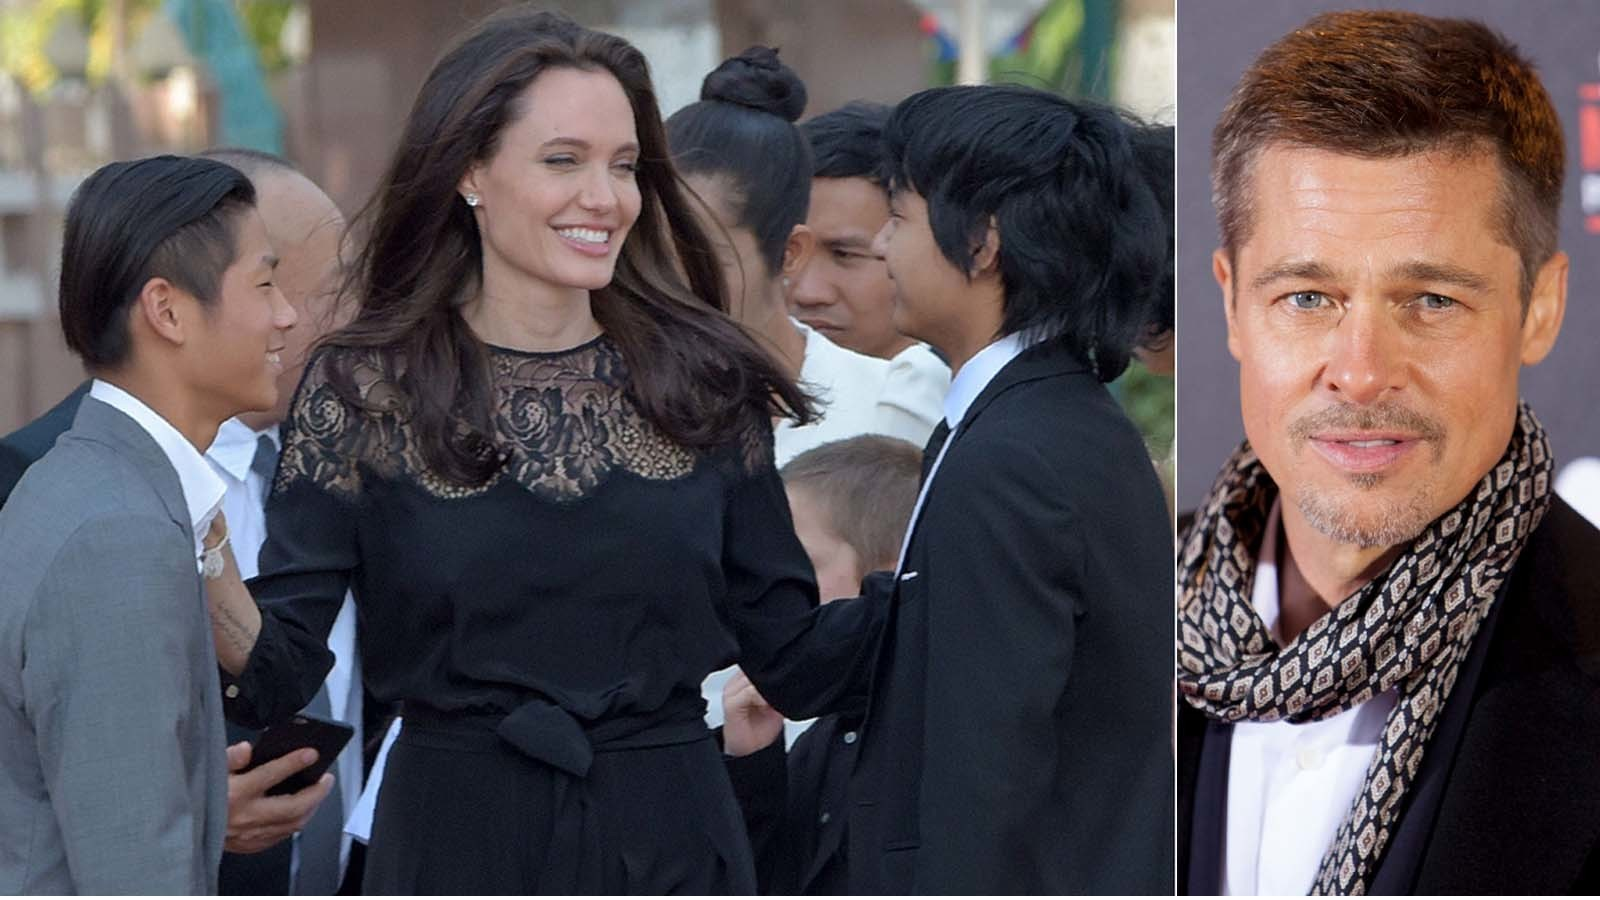 Angelina Jolie Pitt with sons Pax, left, and Maddox; Brad Pitt, right. (Tang Chhin Sothy/ AFP / Getty Images, left; Abraham Caro Marin / Associated Press, right)